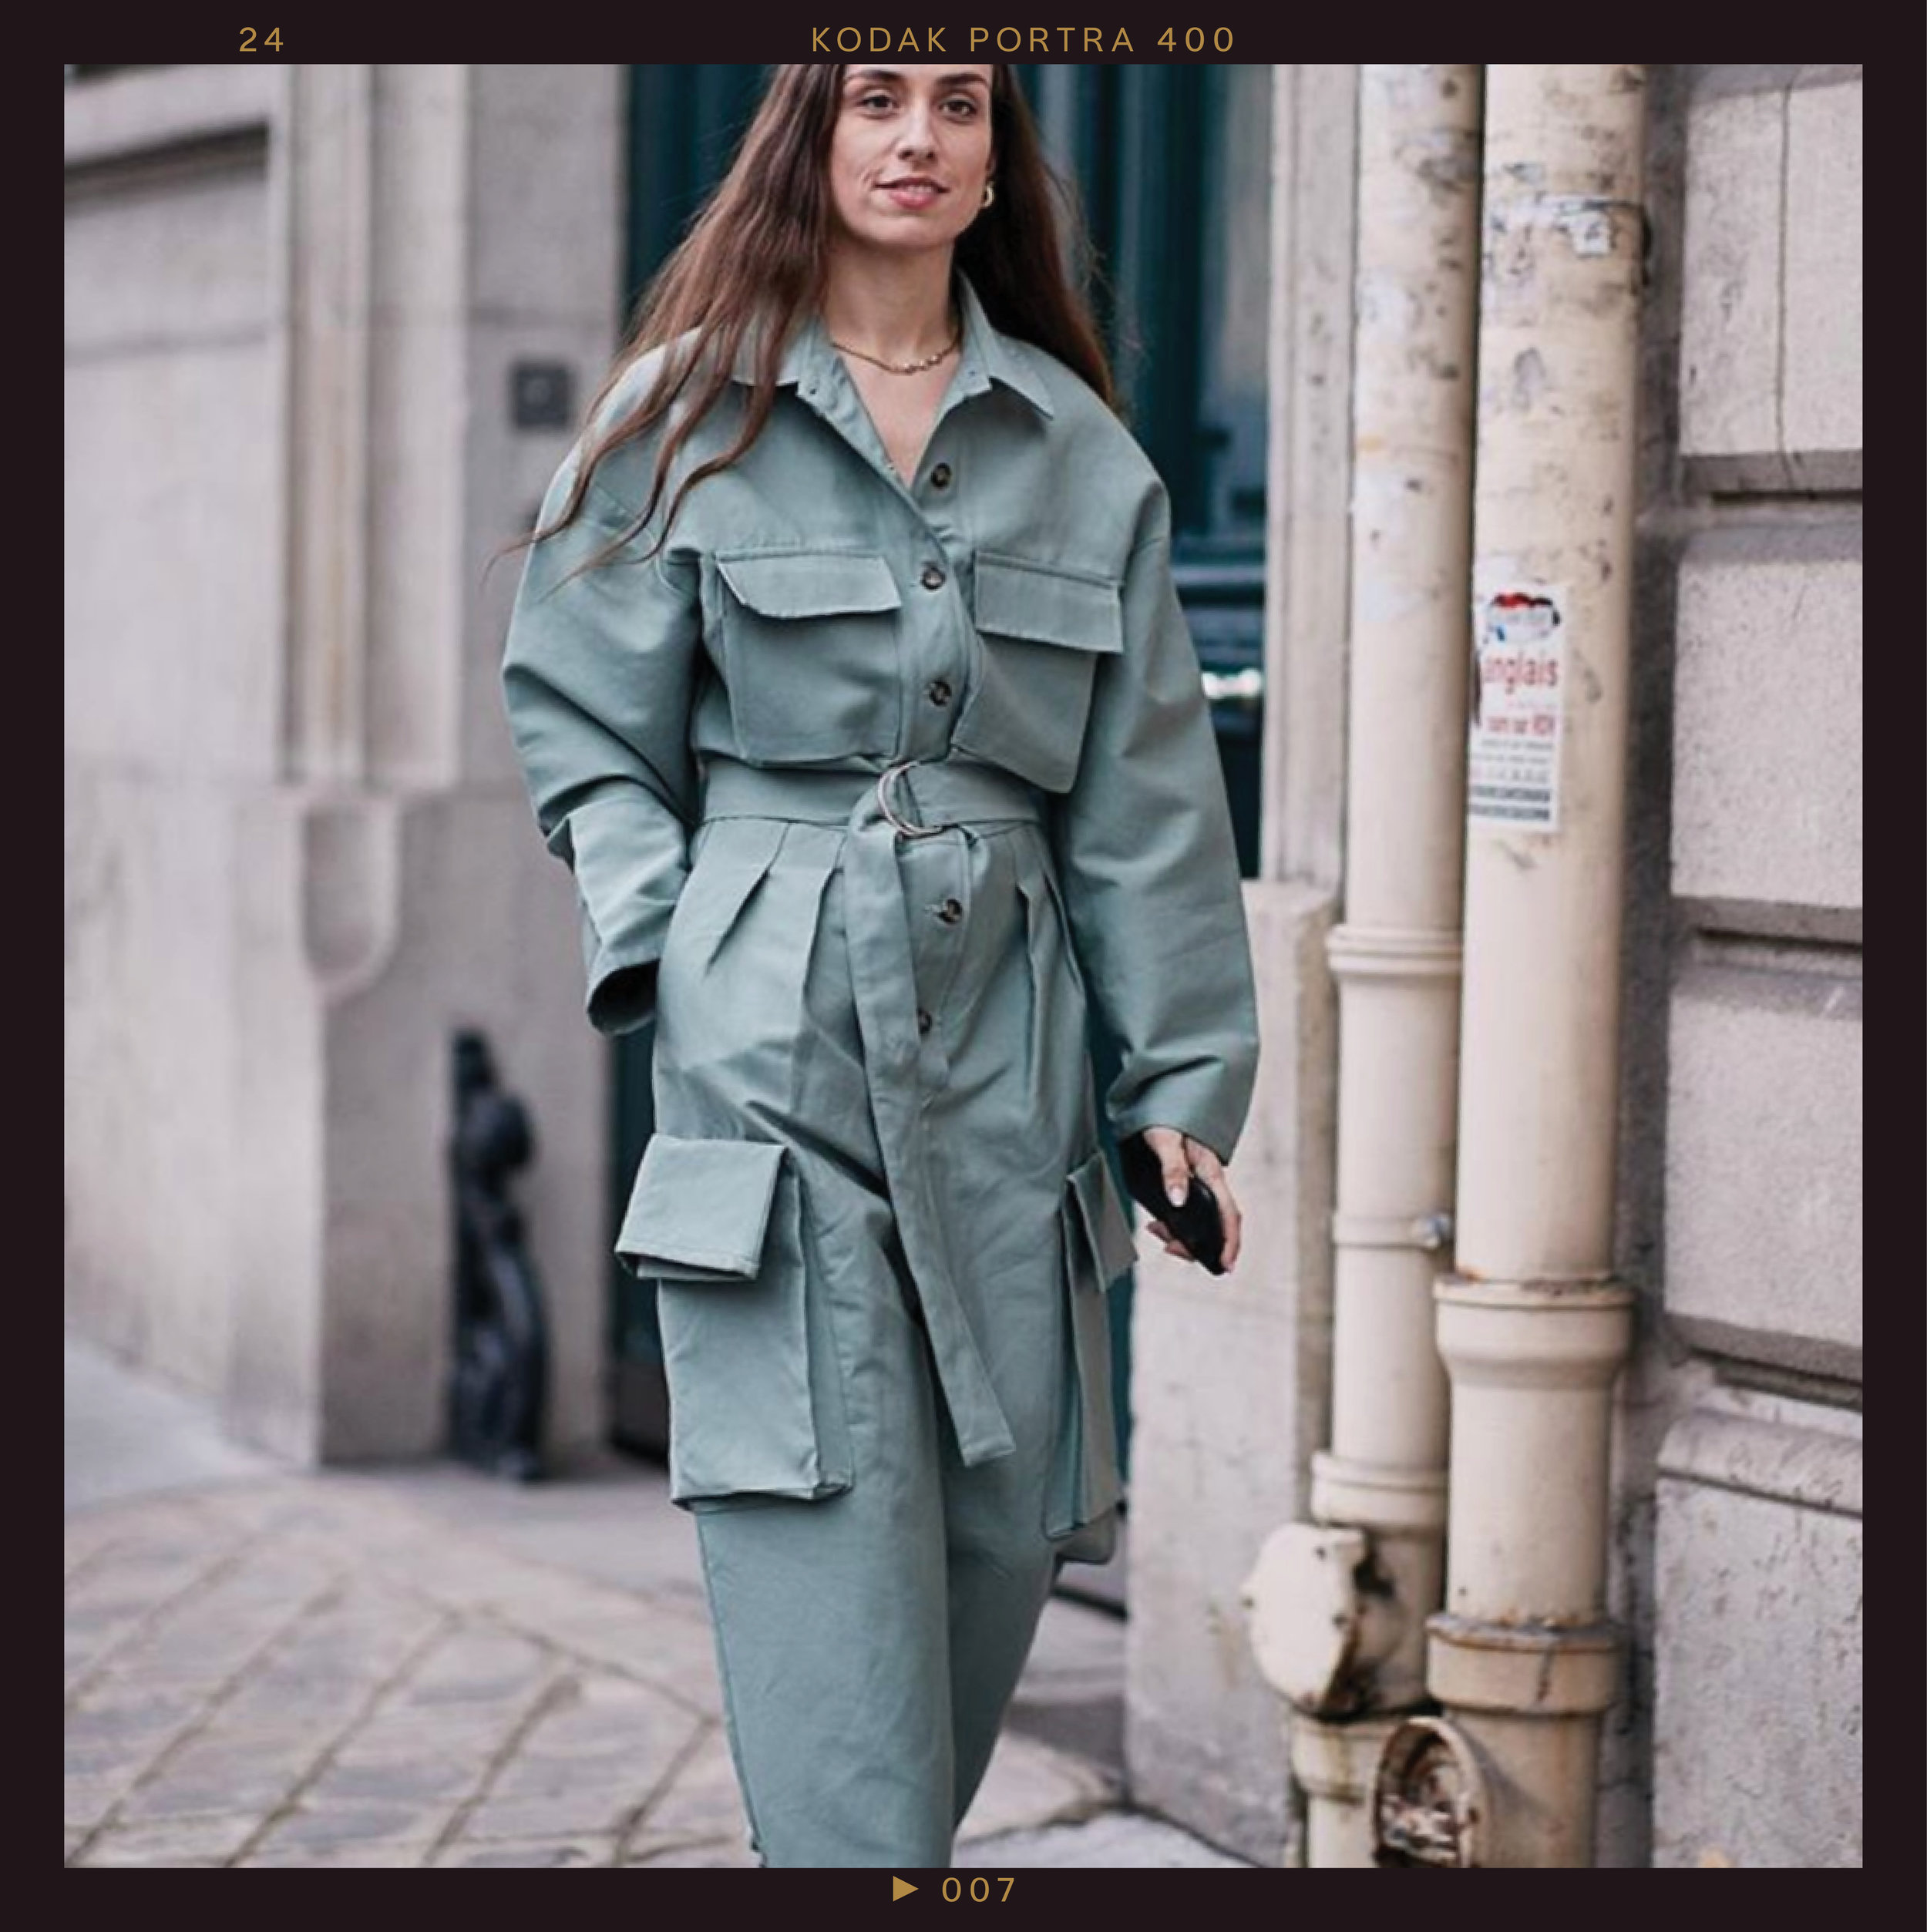 Utility Jackets - From cargo pants, army jackets, and military-inspired uniforms, this season's biggest trend continues into fall—and we can't get enough. Time to invest in a khaki patch pocket jacket or jumpsuit now.